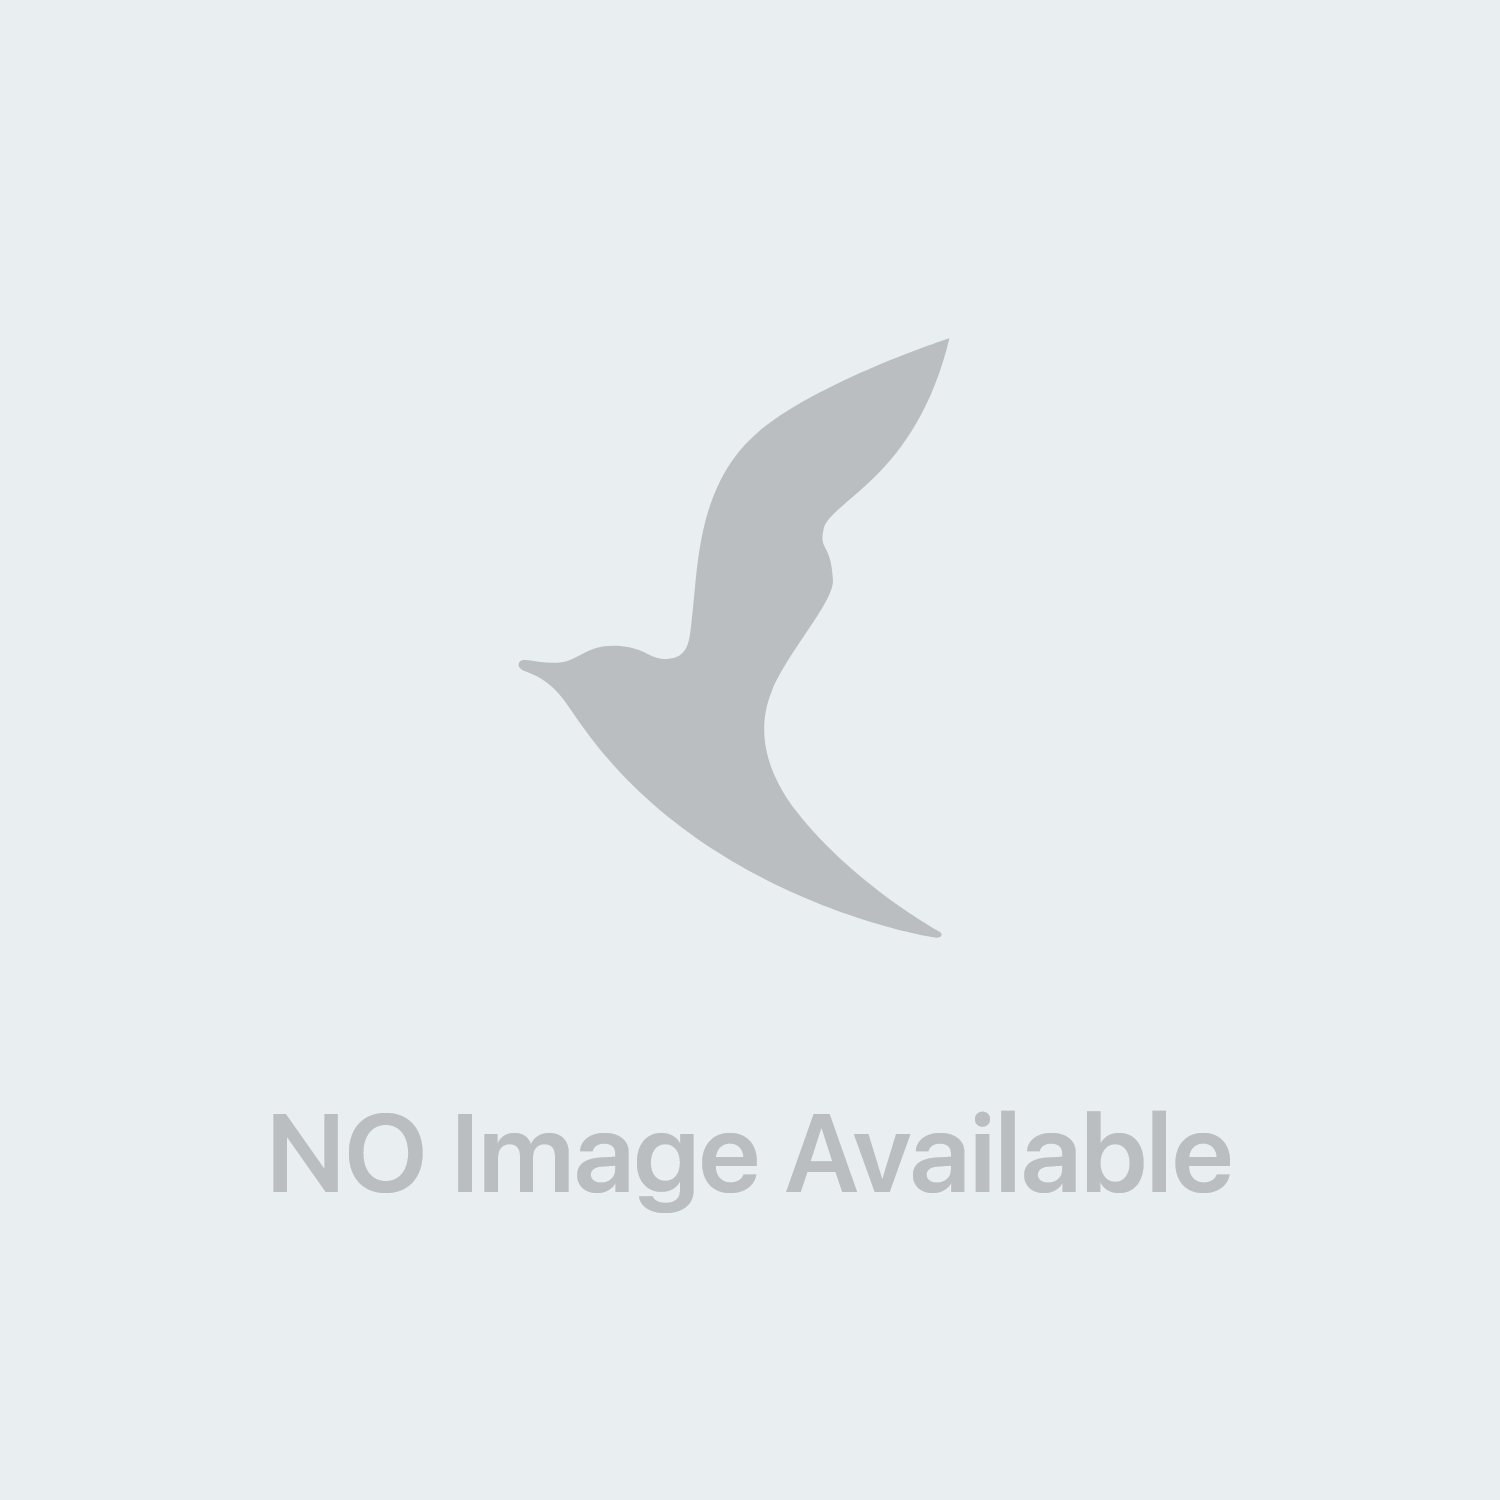 Uriage Isoliss Fluido Anti Rughe Pelle Normale-Mista 40 Ml